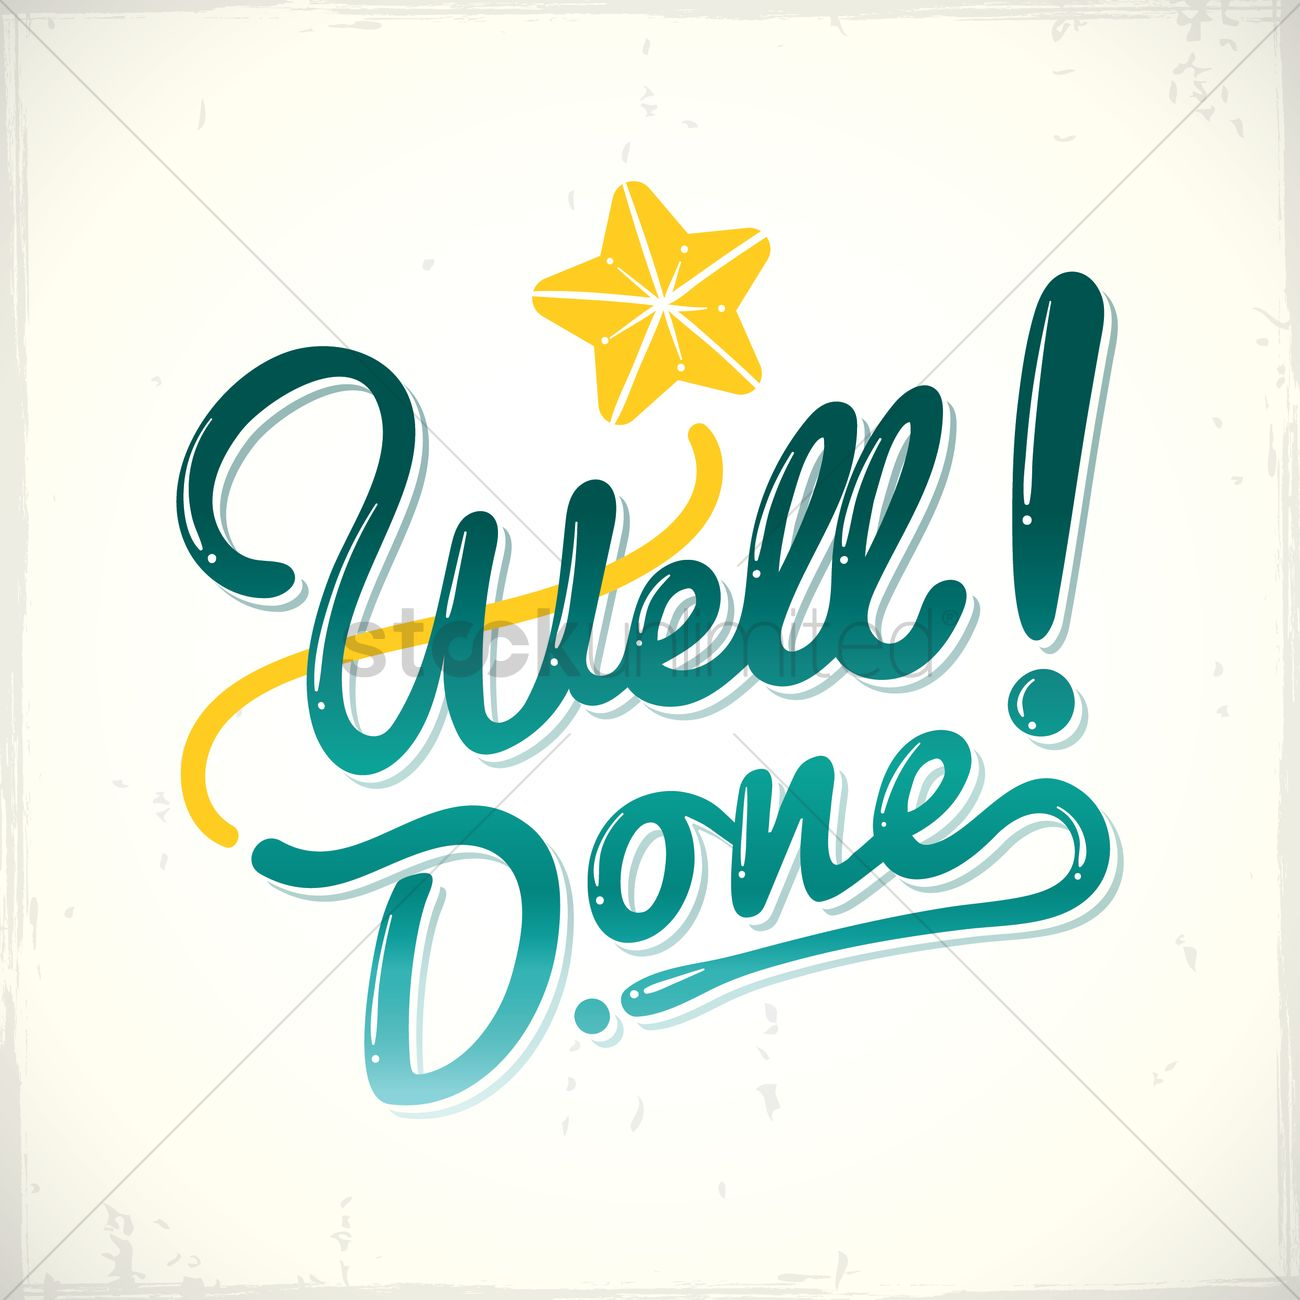 Well done greeting Vector Image - 1811340 | StockUnlimited (1300 x 1300 Pixel)